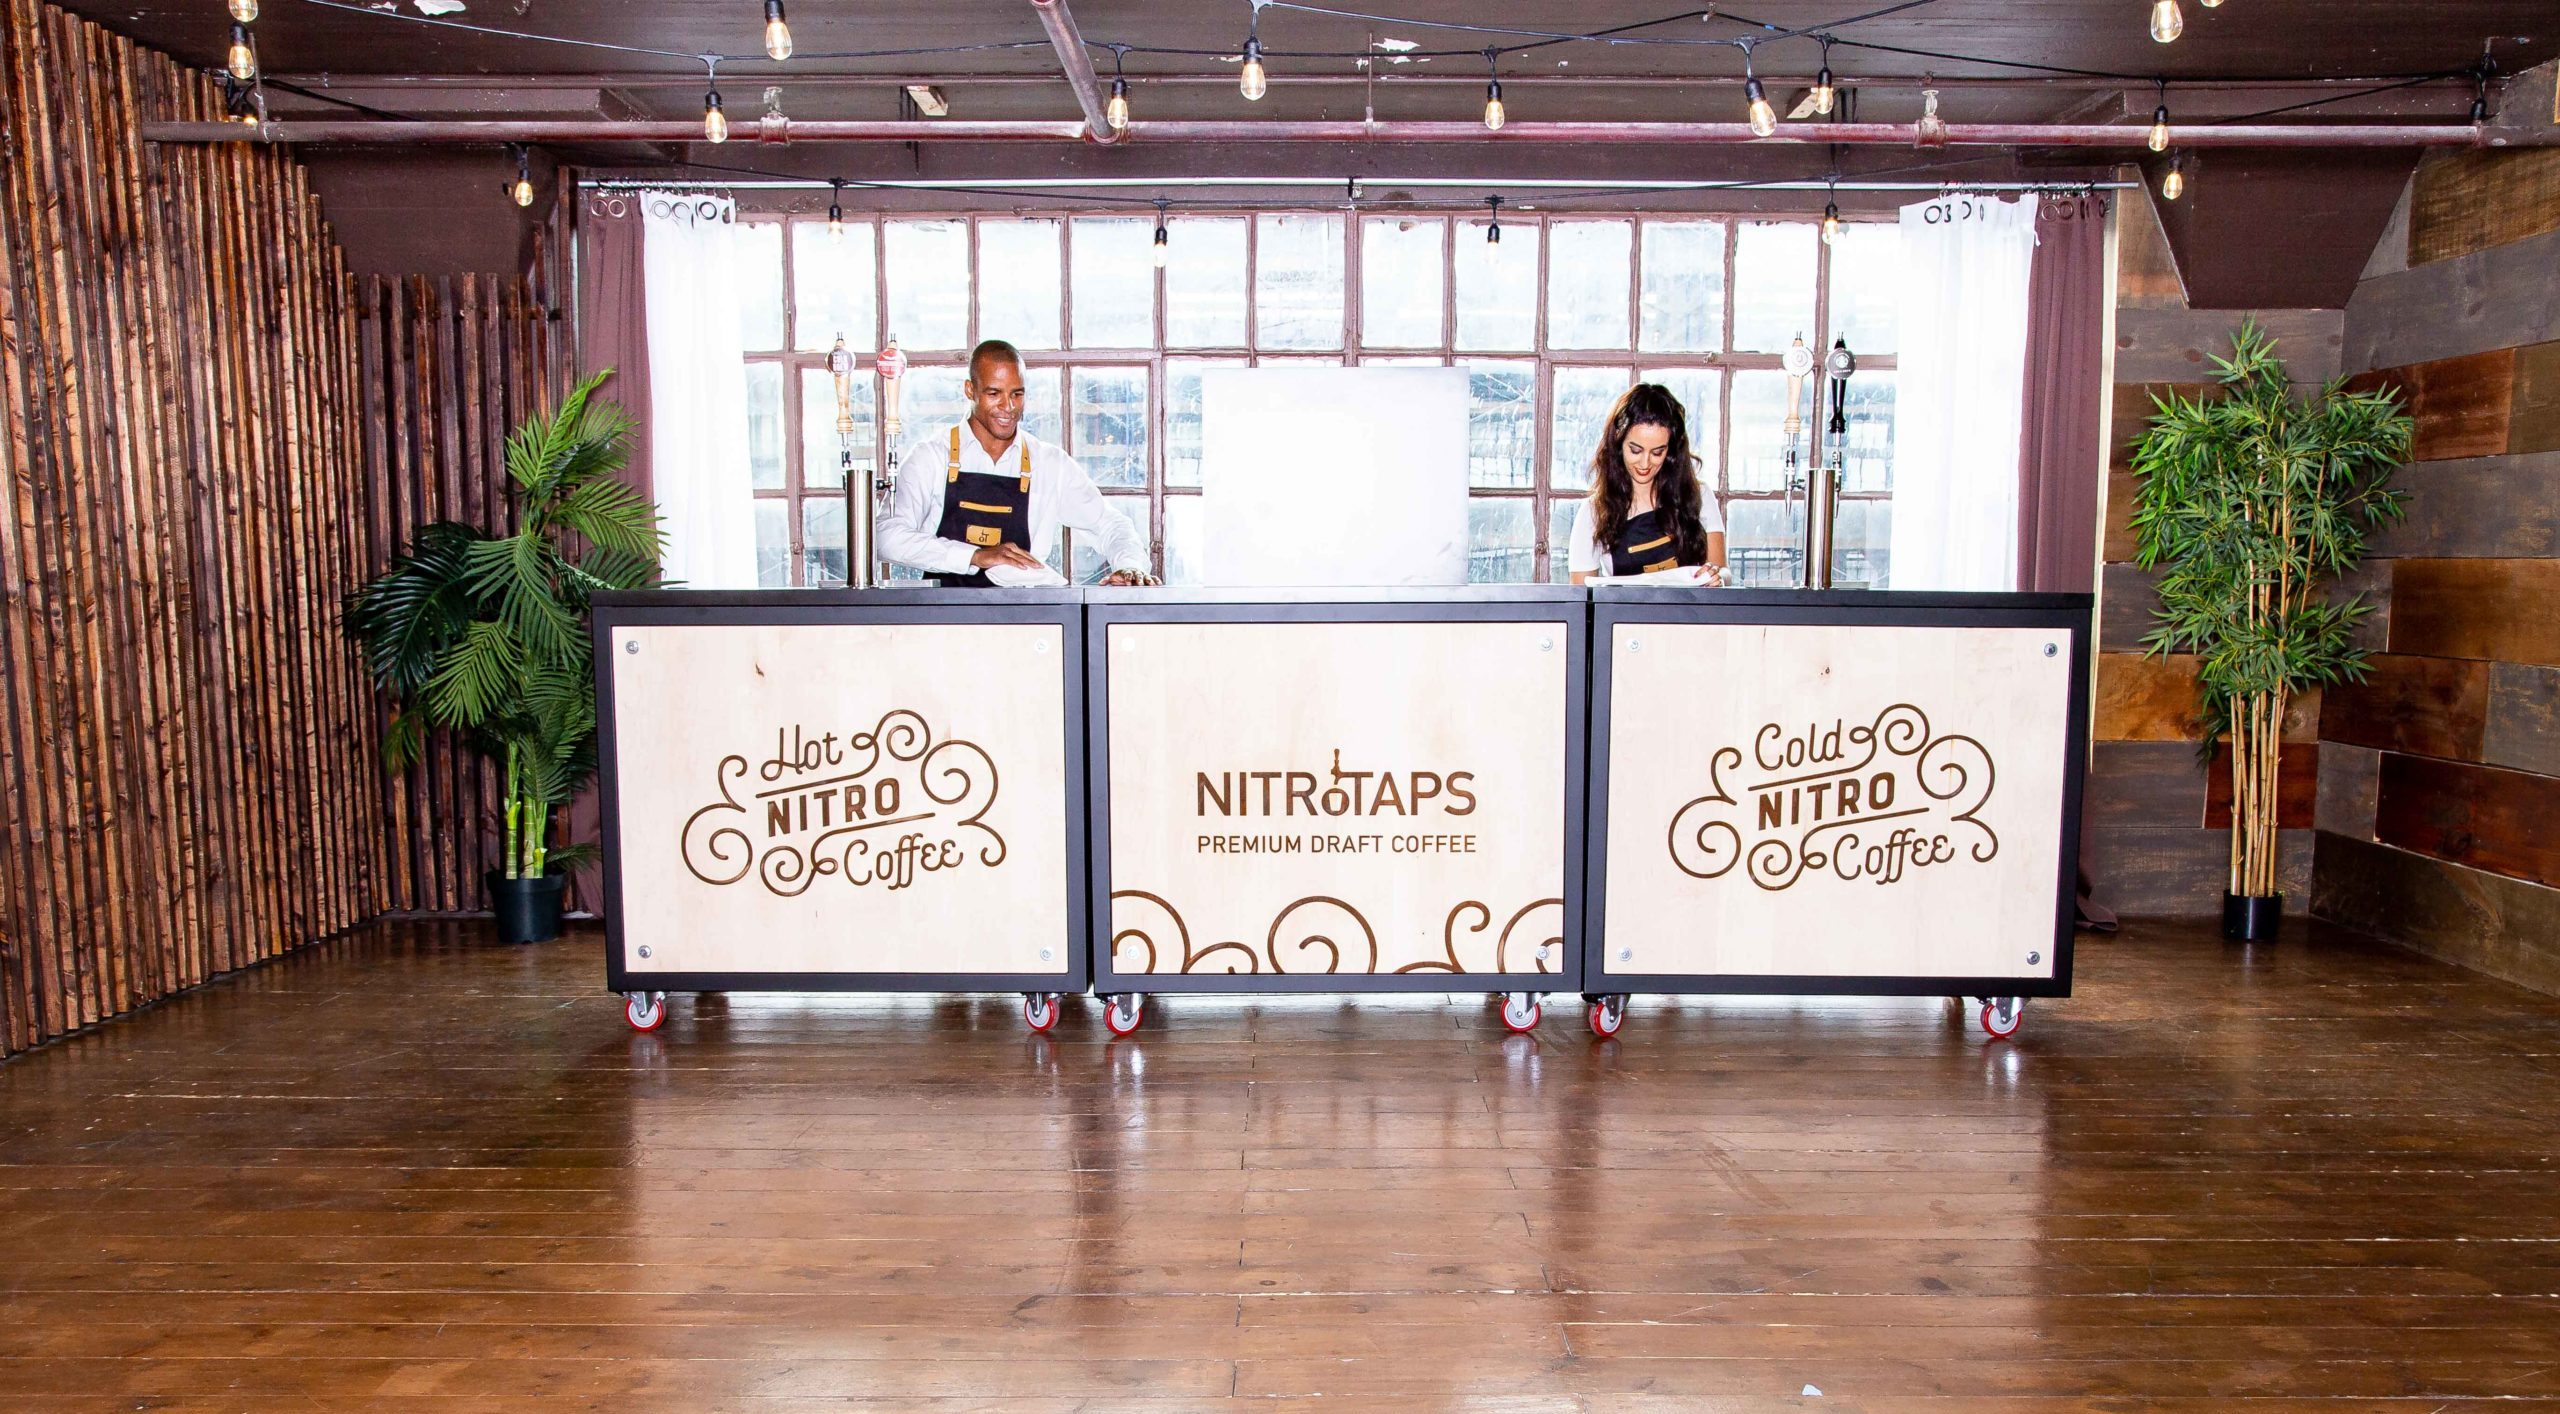 NitroTaps Mobile Bar Coffee Catering NYC